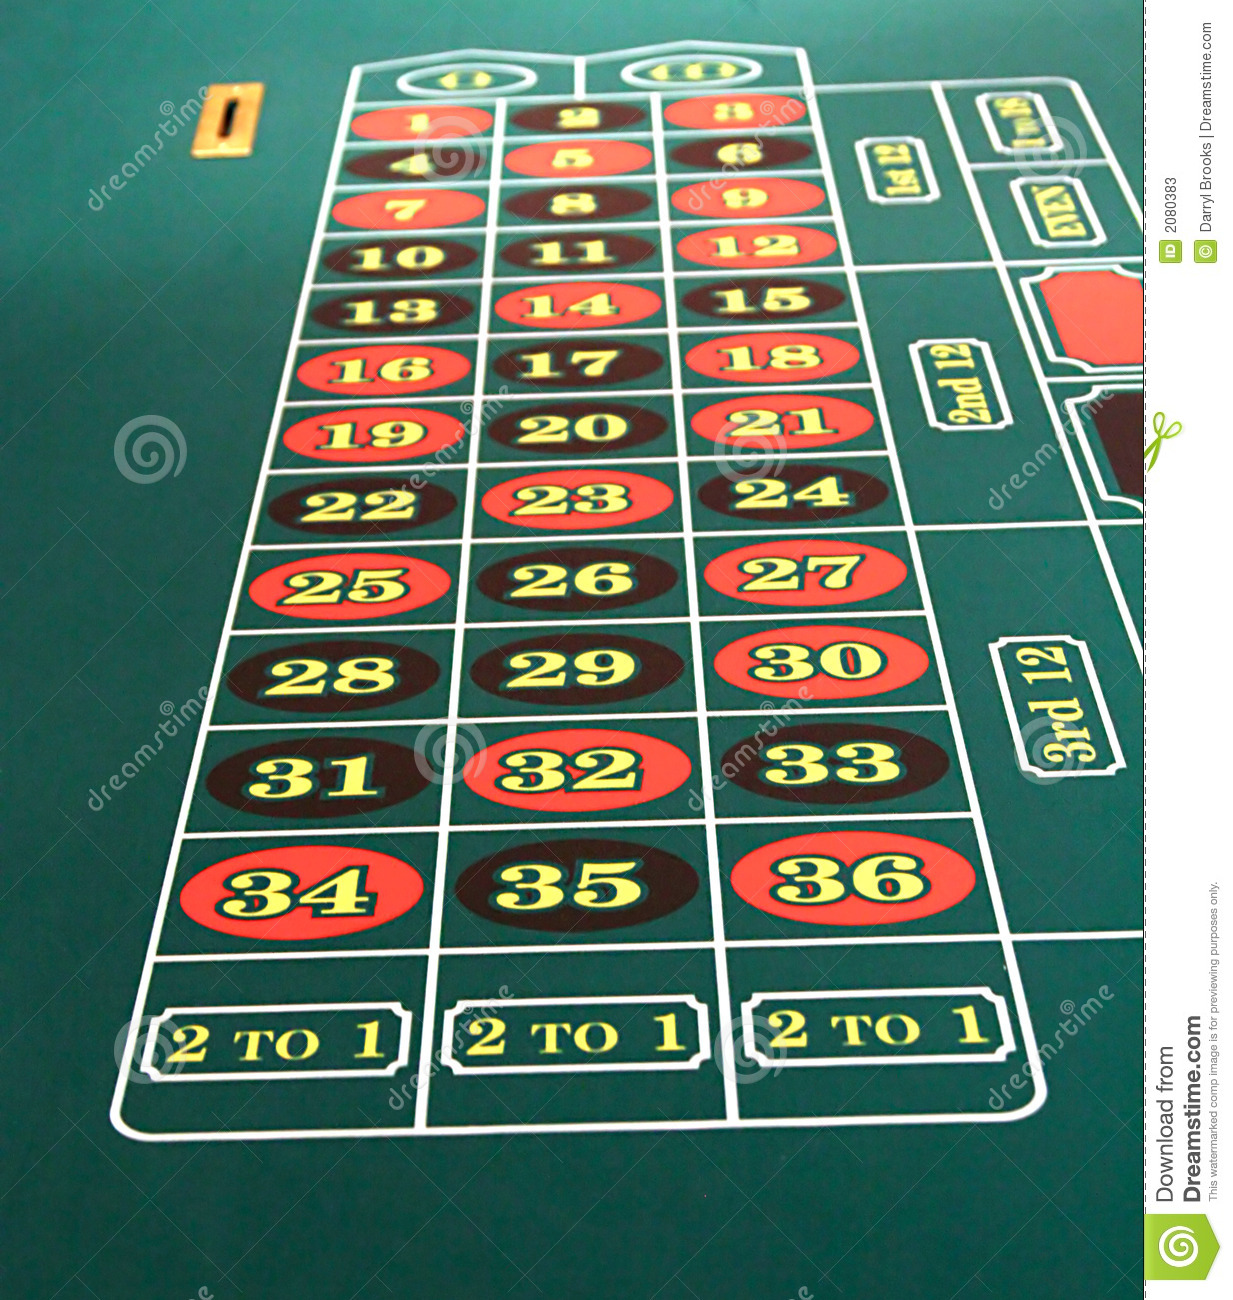 Roulette table stock photos image 2080383 - Table a roulette ...